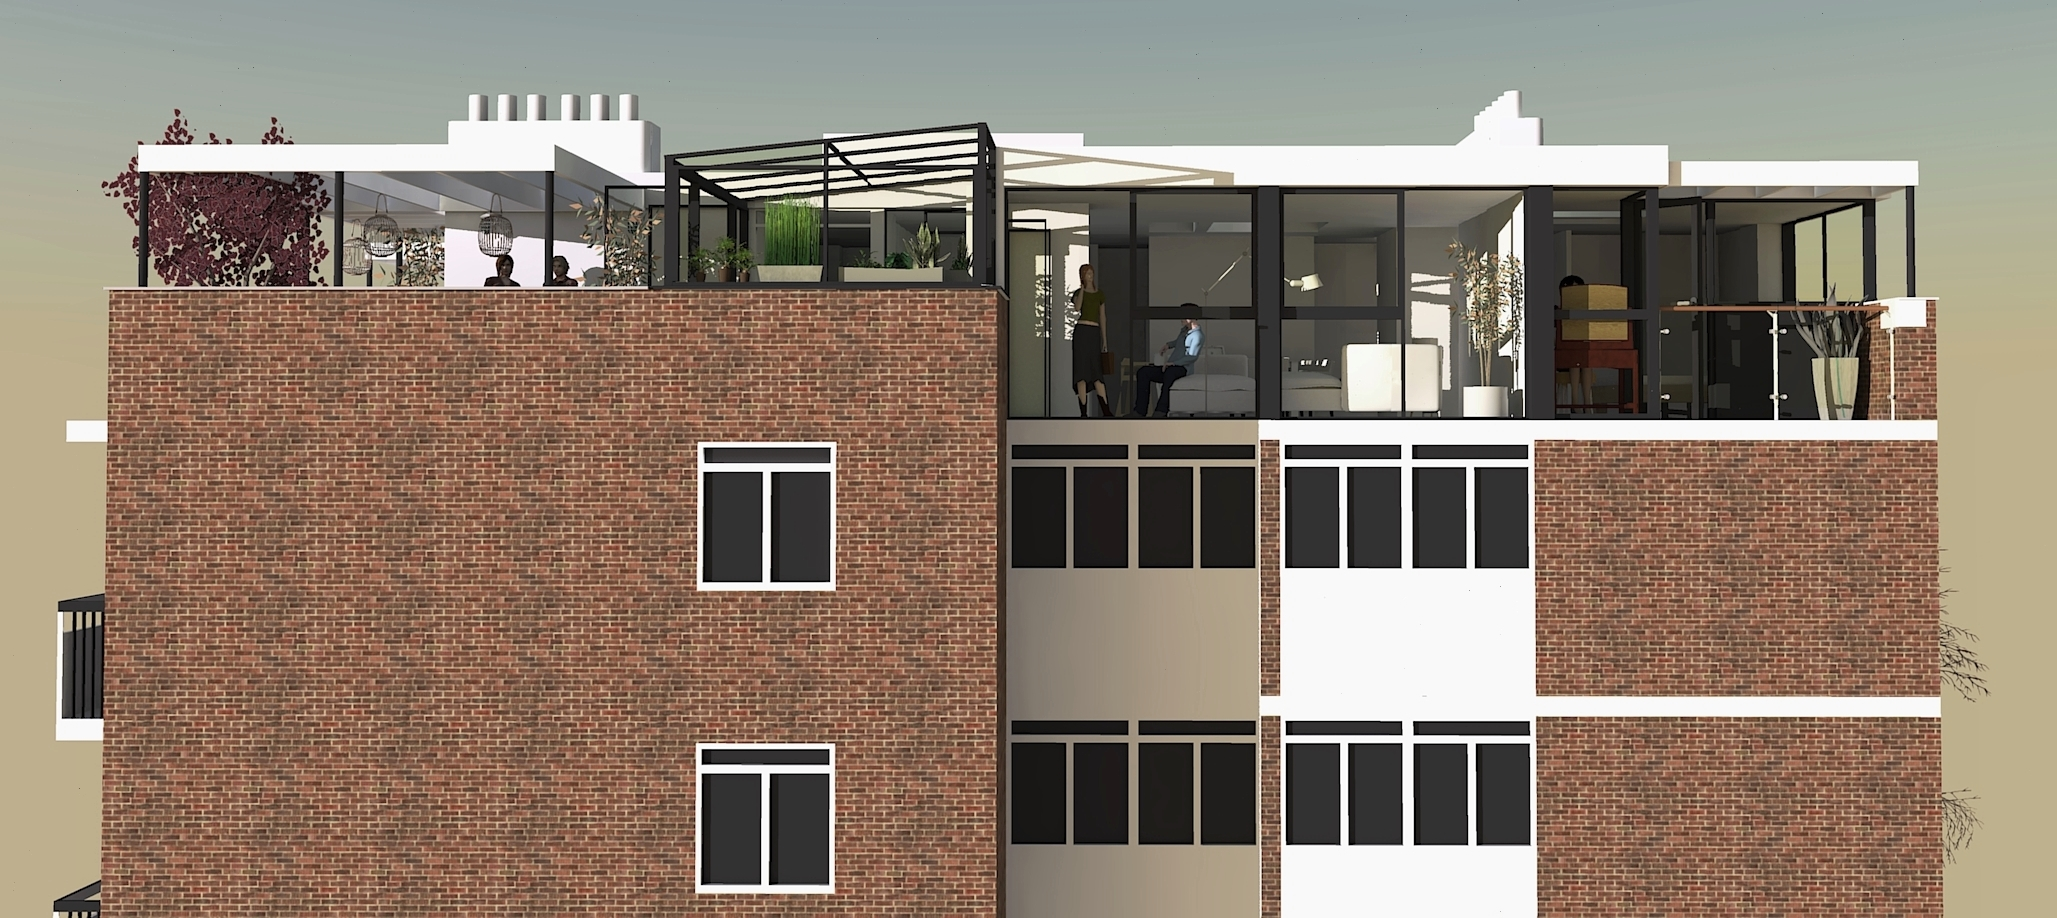 Penthouse Apartment, Camden 2017. Stage: Live Planning Application